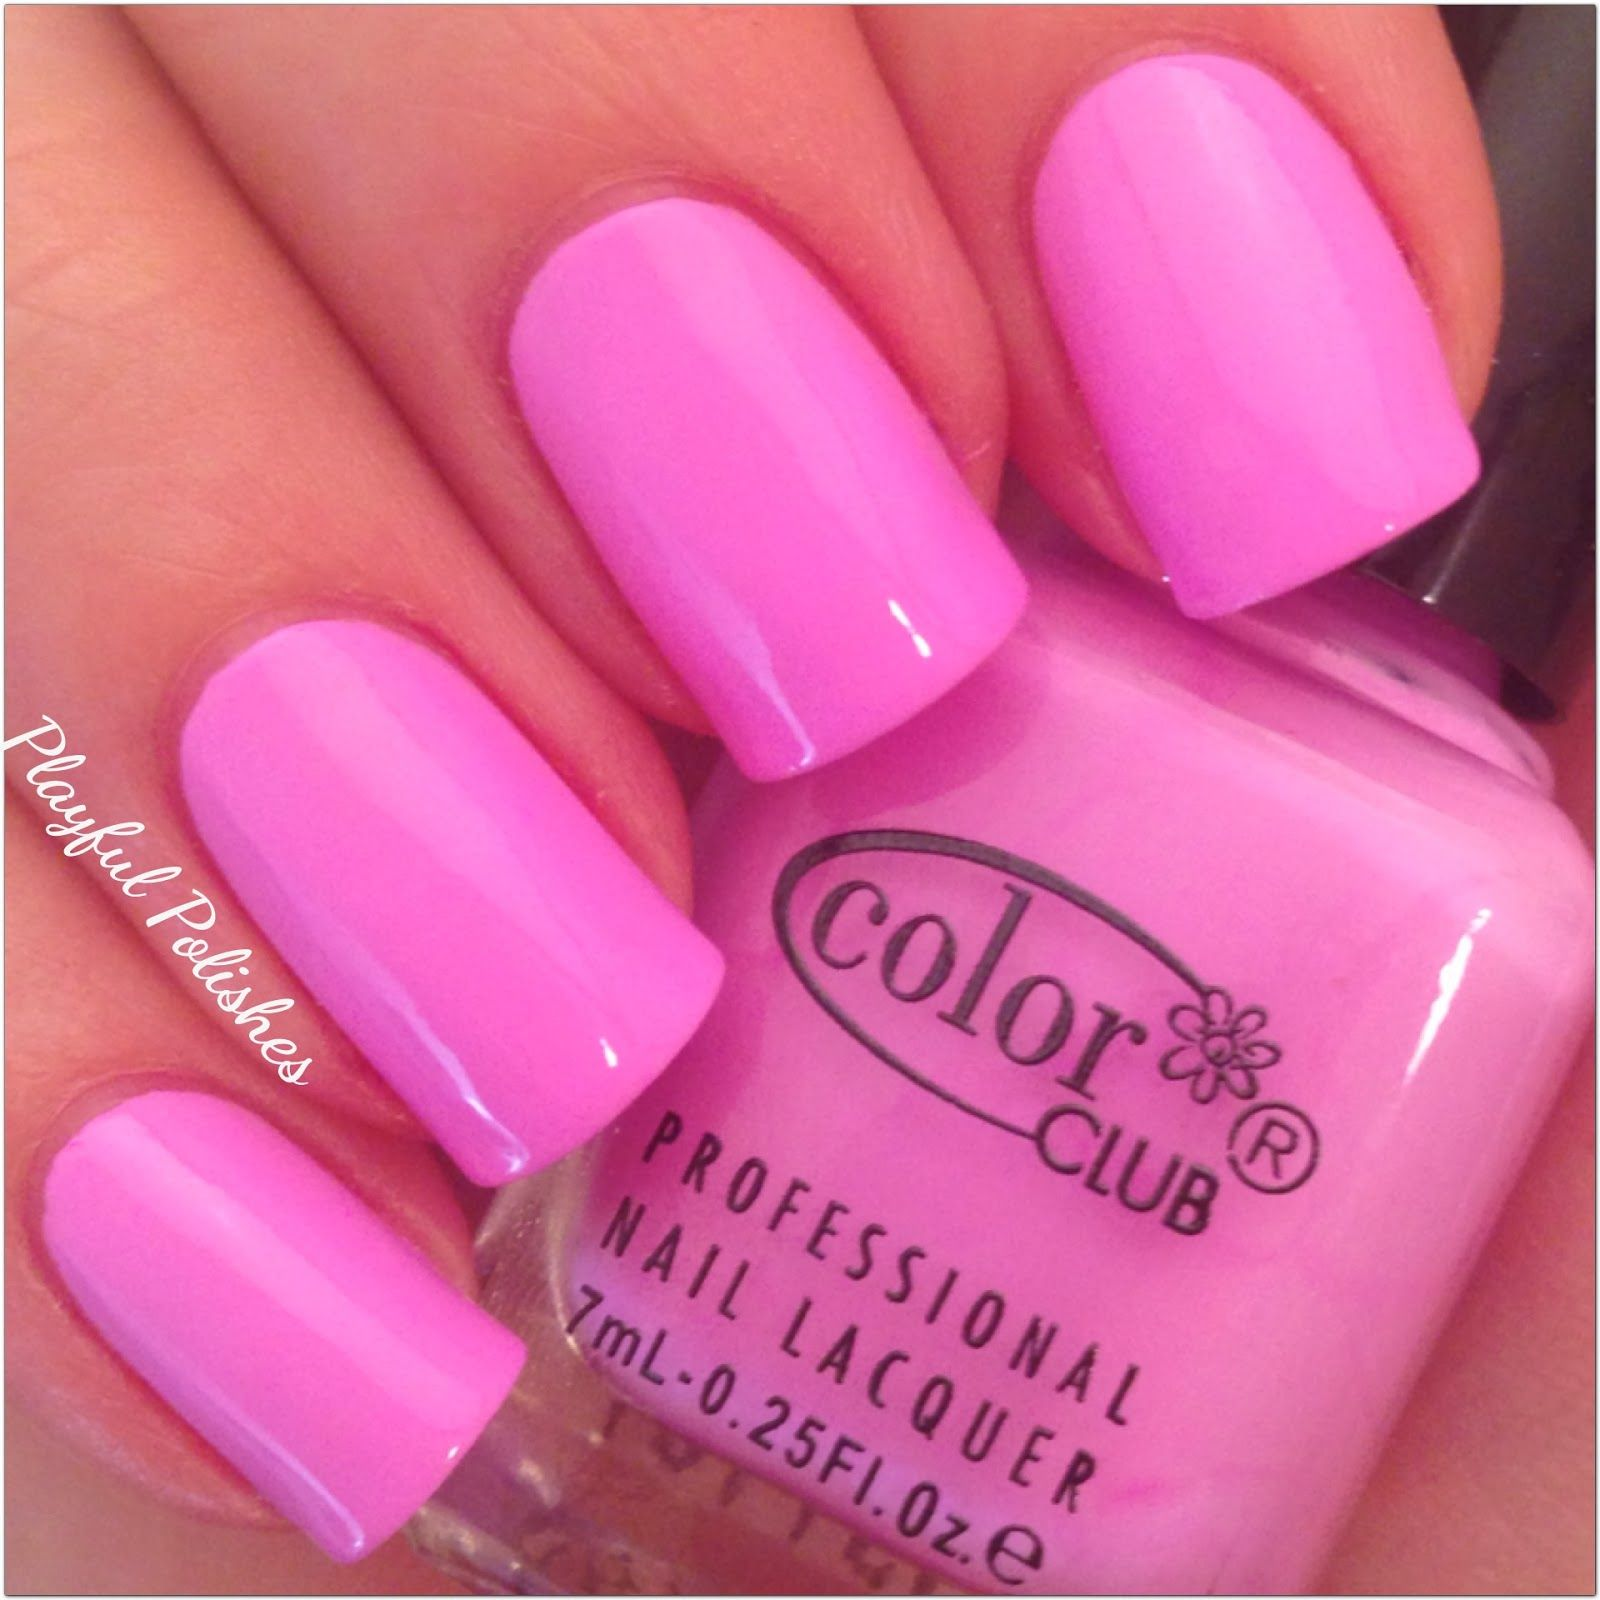 Playful Polishes: SWATCHES - E.L.F., FUNKY FINGERS AND MORE | Nails ...